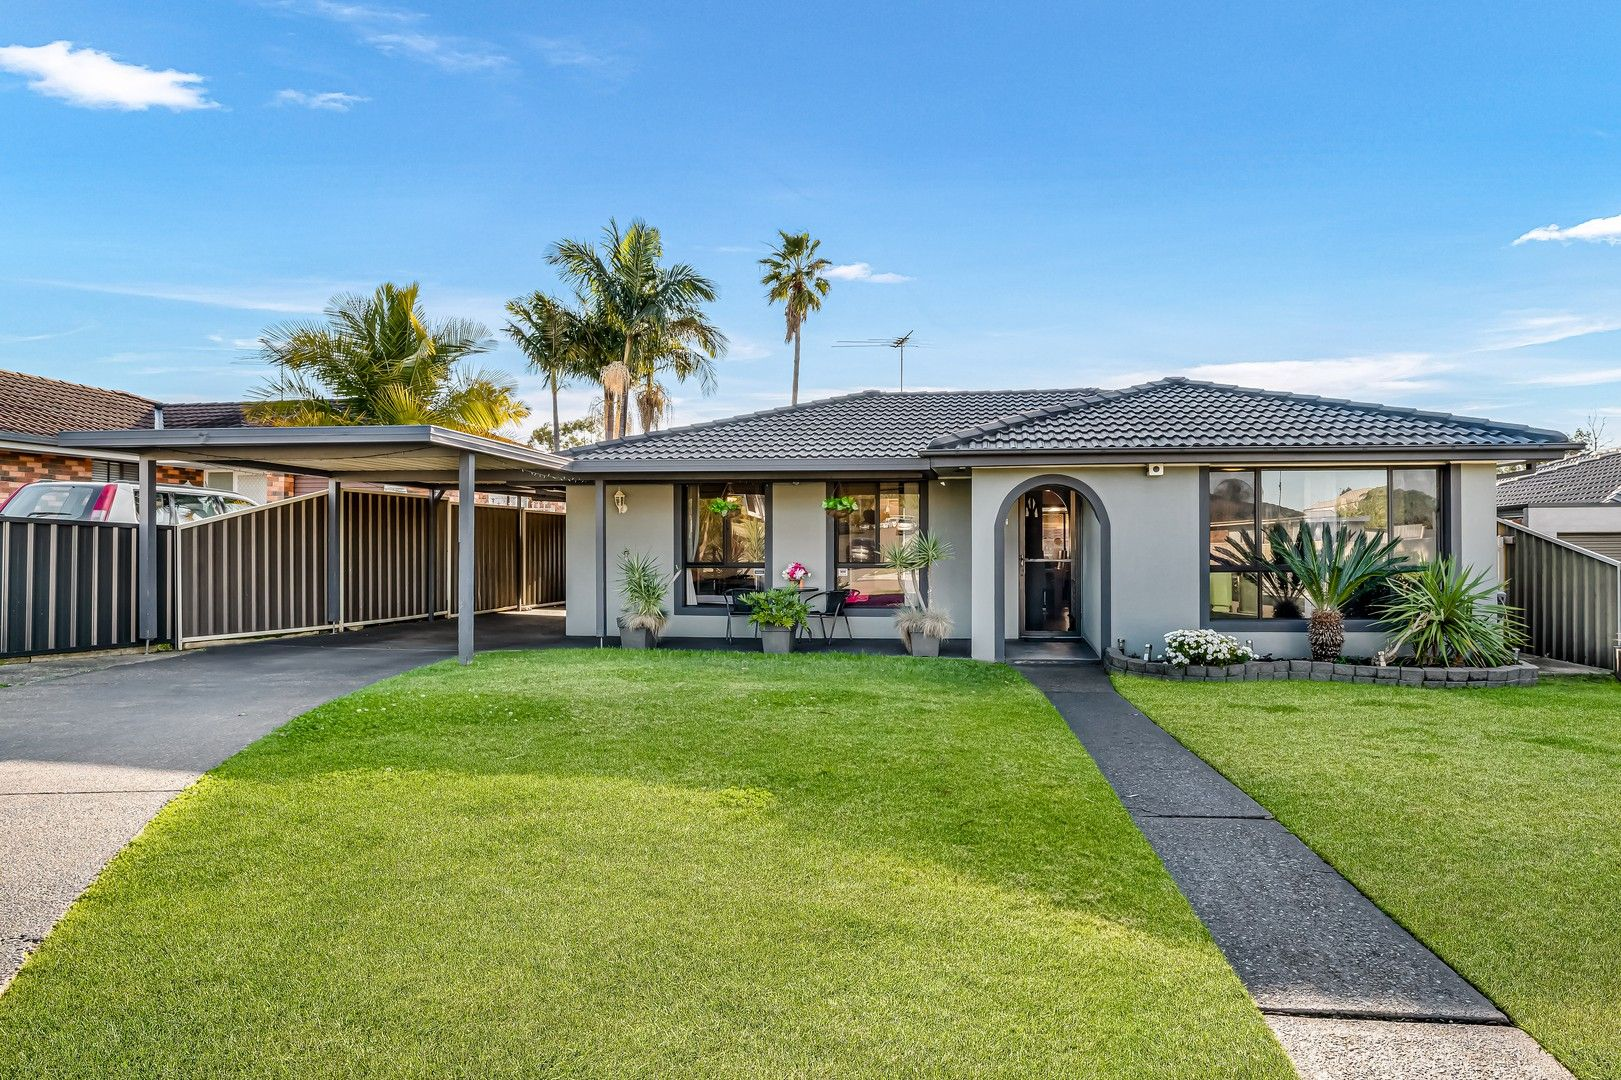 57 Bettong Crescent, Bossley Park NSW 2176, Image 0